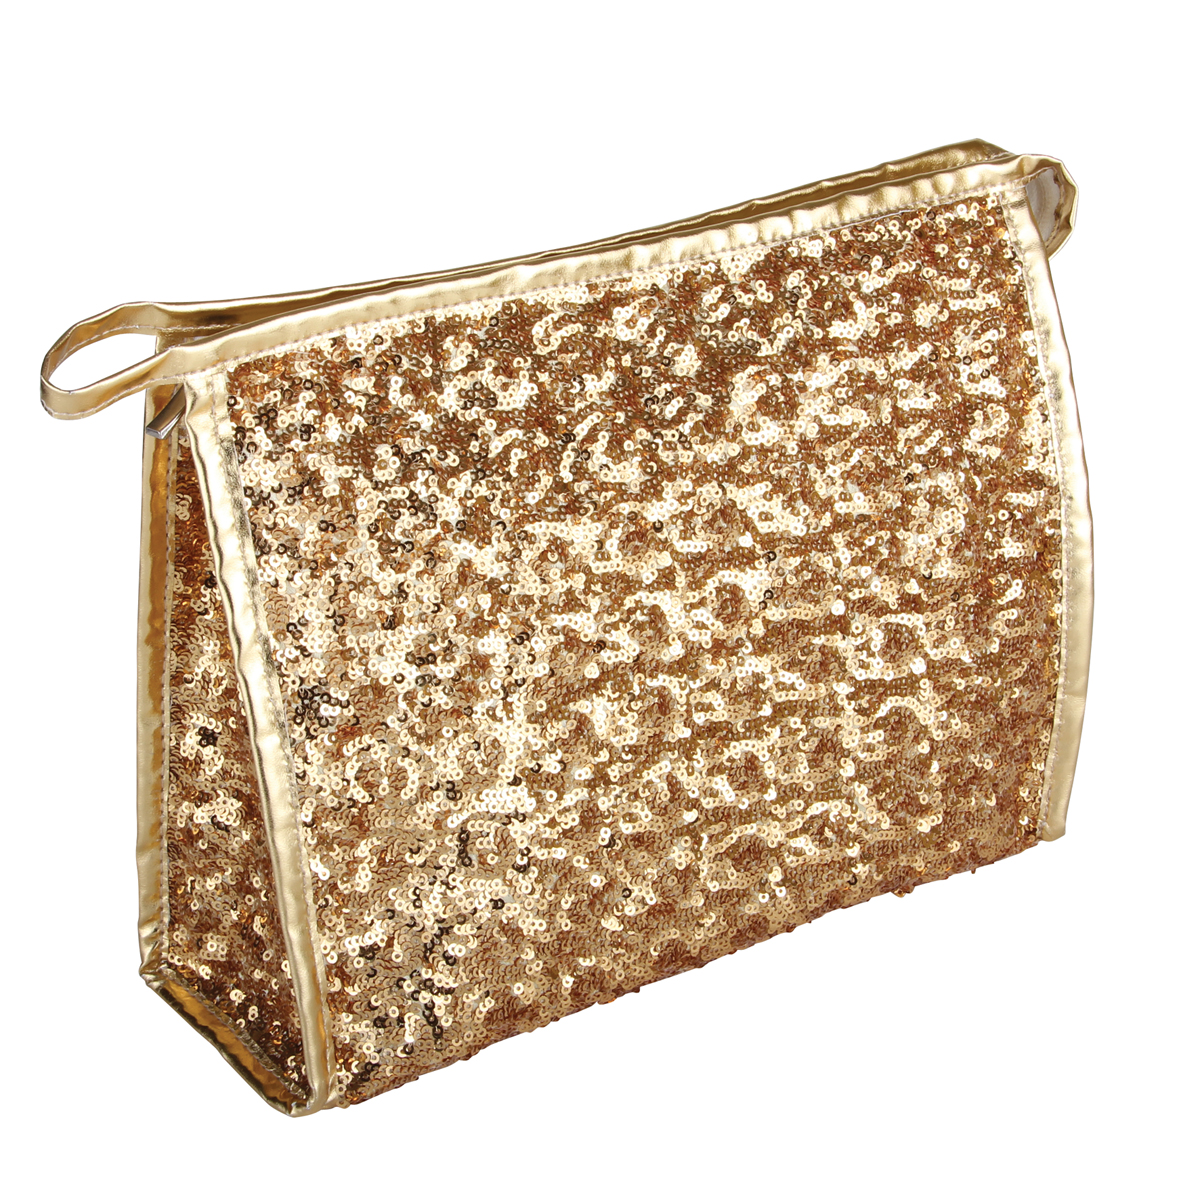 B2402 - Gold Shimmer & Shine Collection Cosmetic/Toiletry Bags - B2402